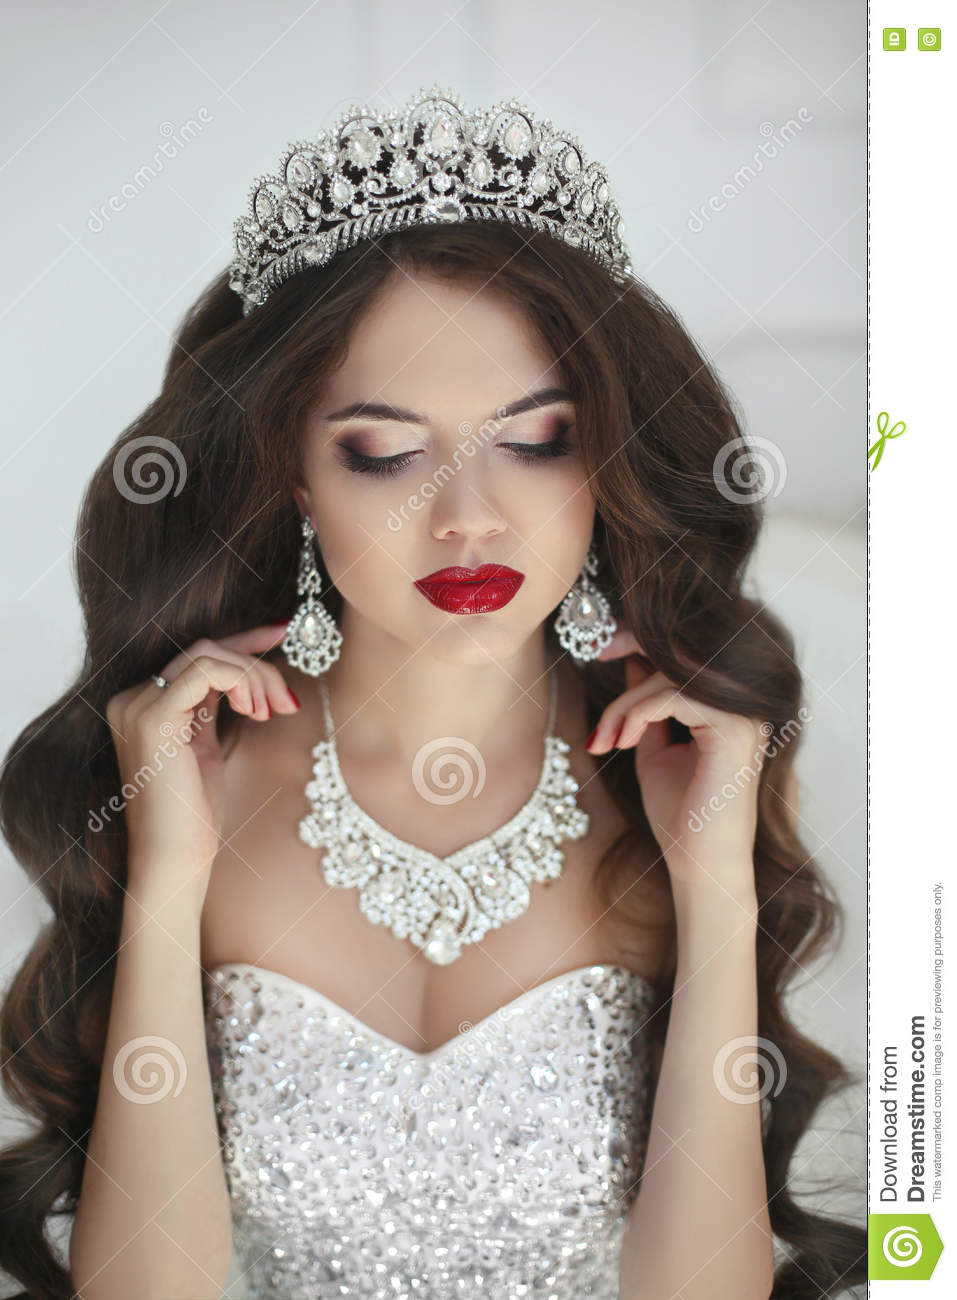 Beautiful Bride Makeup Fashion Jewelry Elegant Brunette Woman Stock Photo Image Of